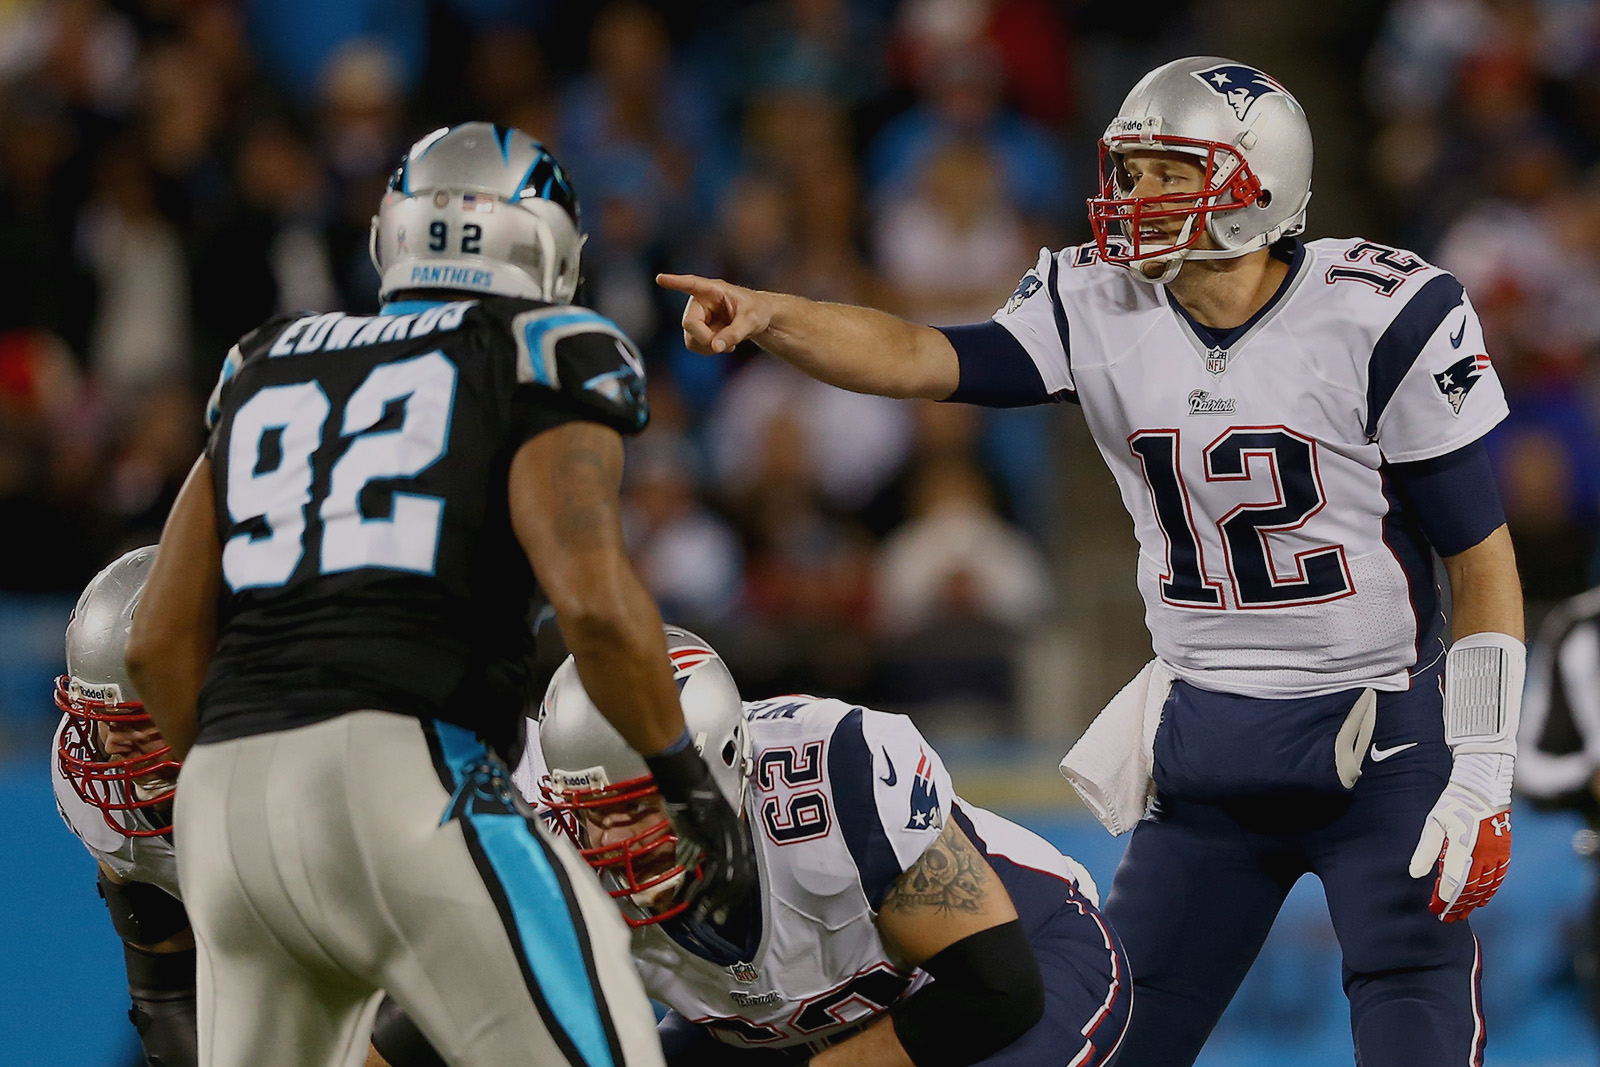 CHARLOTTE, NC - NOVEMBER 18:  Quarterback Tom Brady #12 of the New England Patriots calls out from under center in the first half against the Carolina Panthers at Bank of America Stadium on November 18, 2013 in Charlotte, North Carolina.  (Photo by Streeter Lecka/Getty Images)